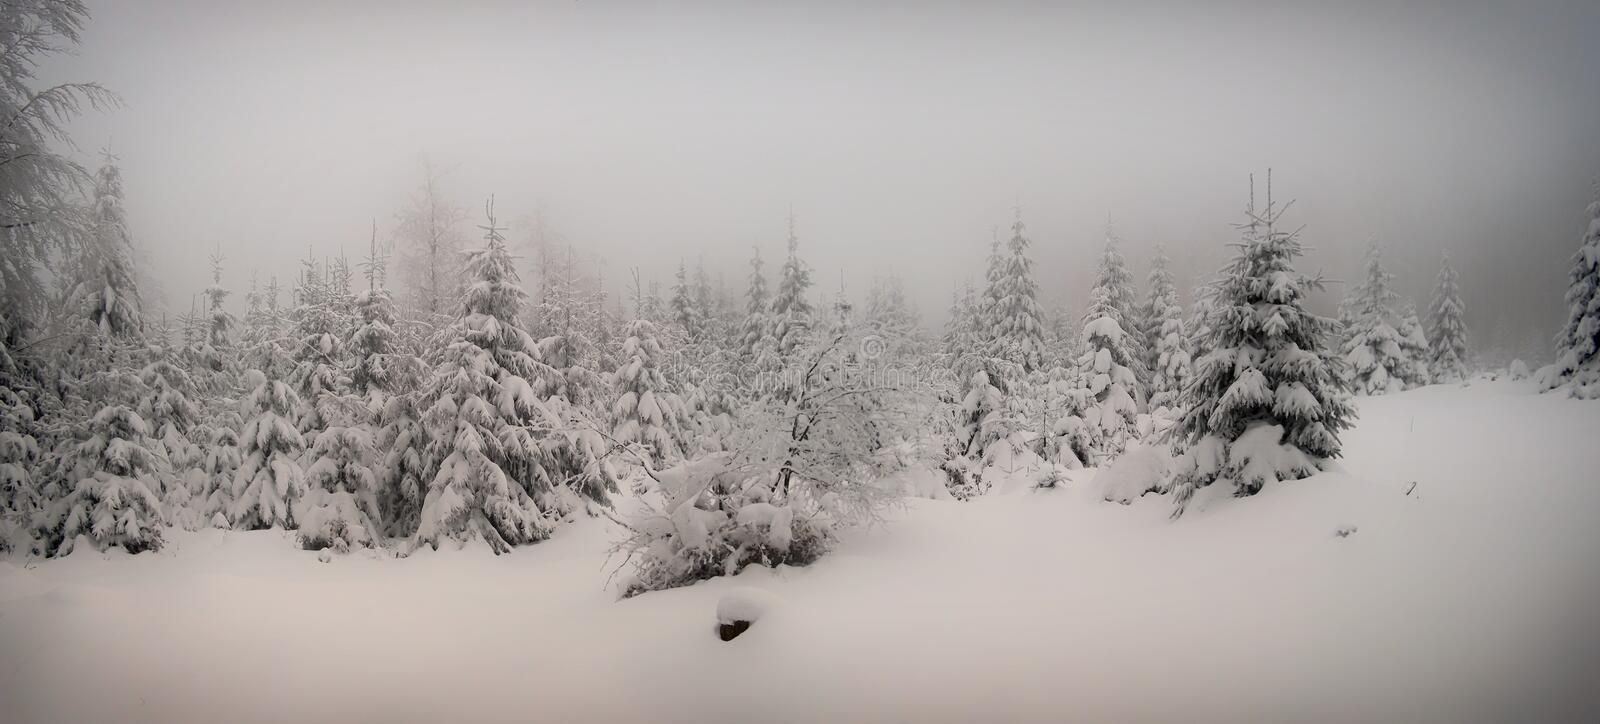 Beautiful winter landscape with fresh snow covered spruce trees. Mountain forest at winter day,fog,relaxing nature. White negative space for text.Can be used as royalty free stock photography